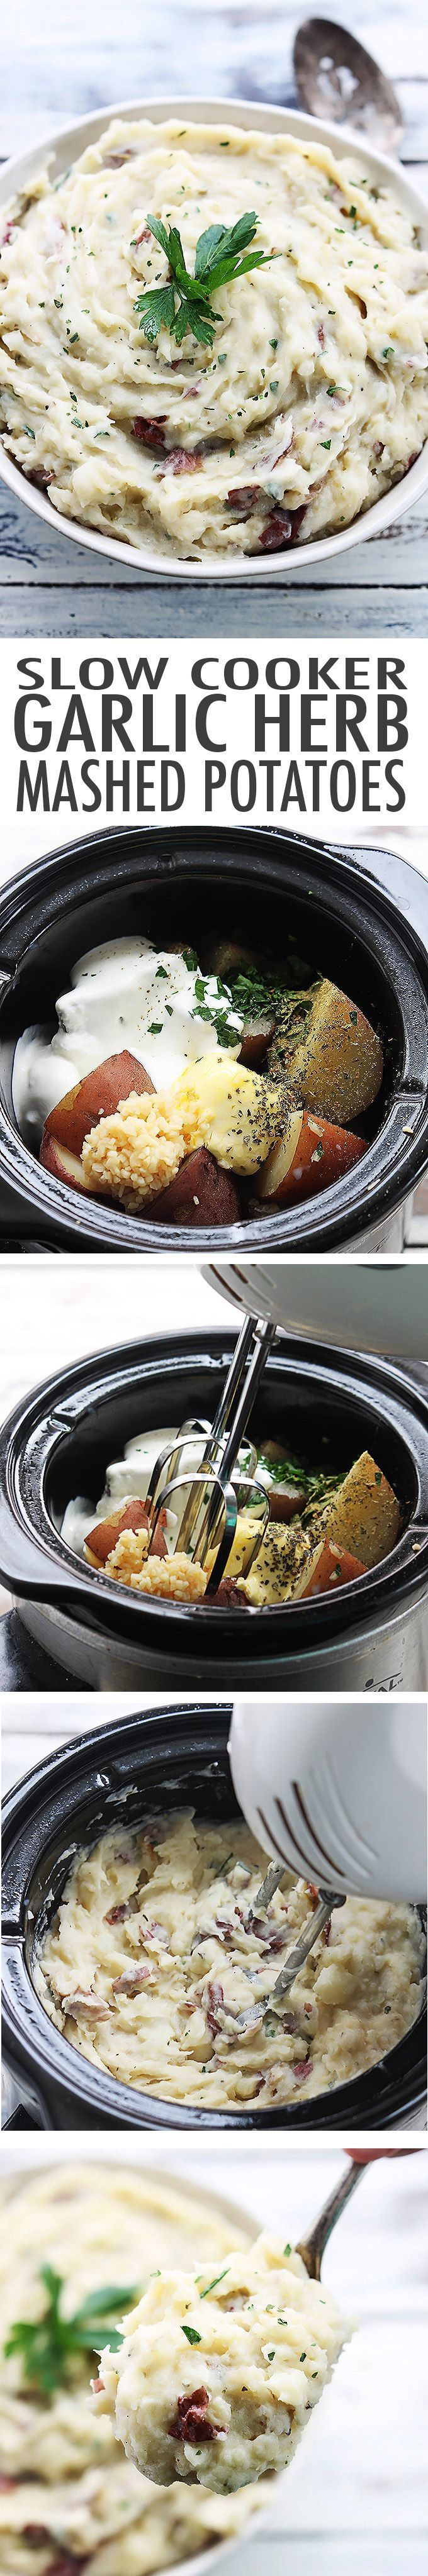 Food and Drink: Slow Cooker Buttery Garlic Herb Mashed Potatoes - ...